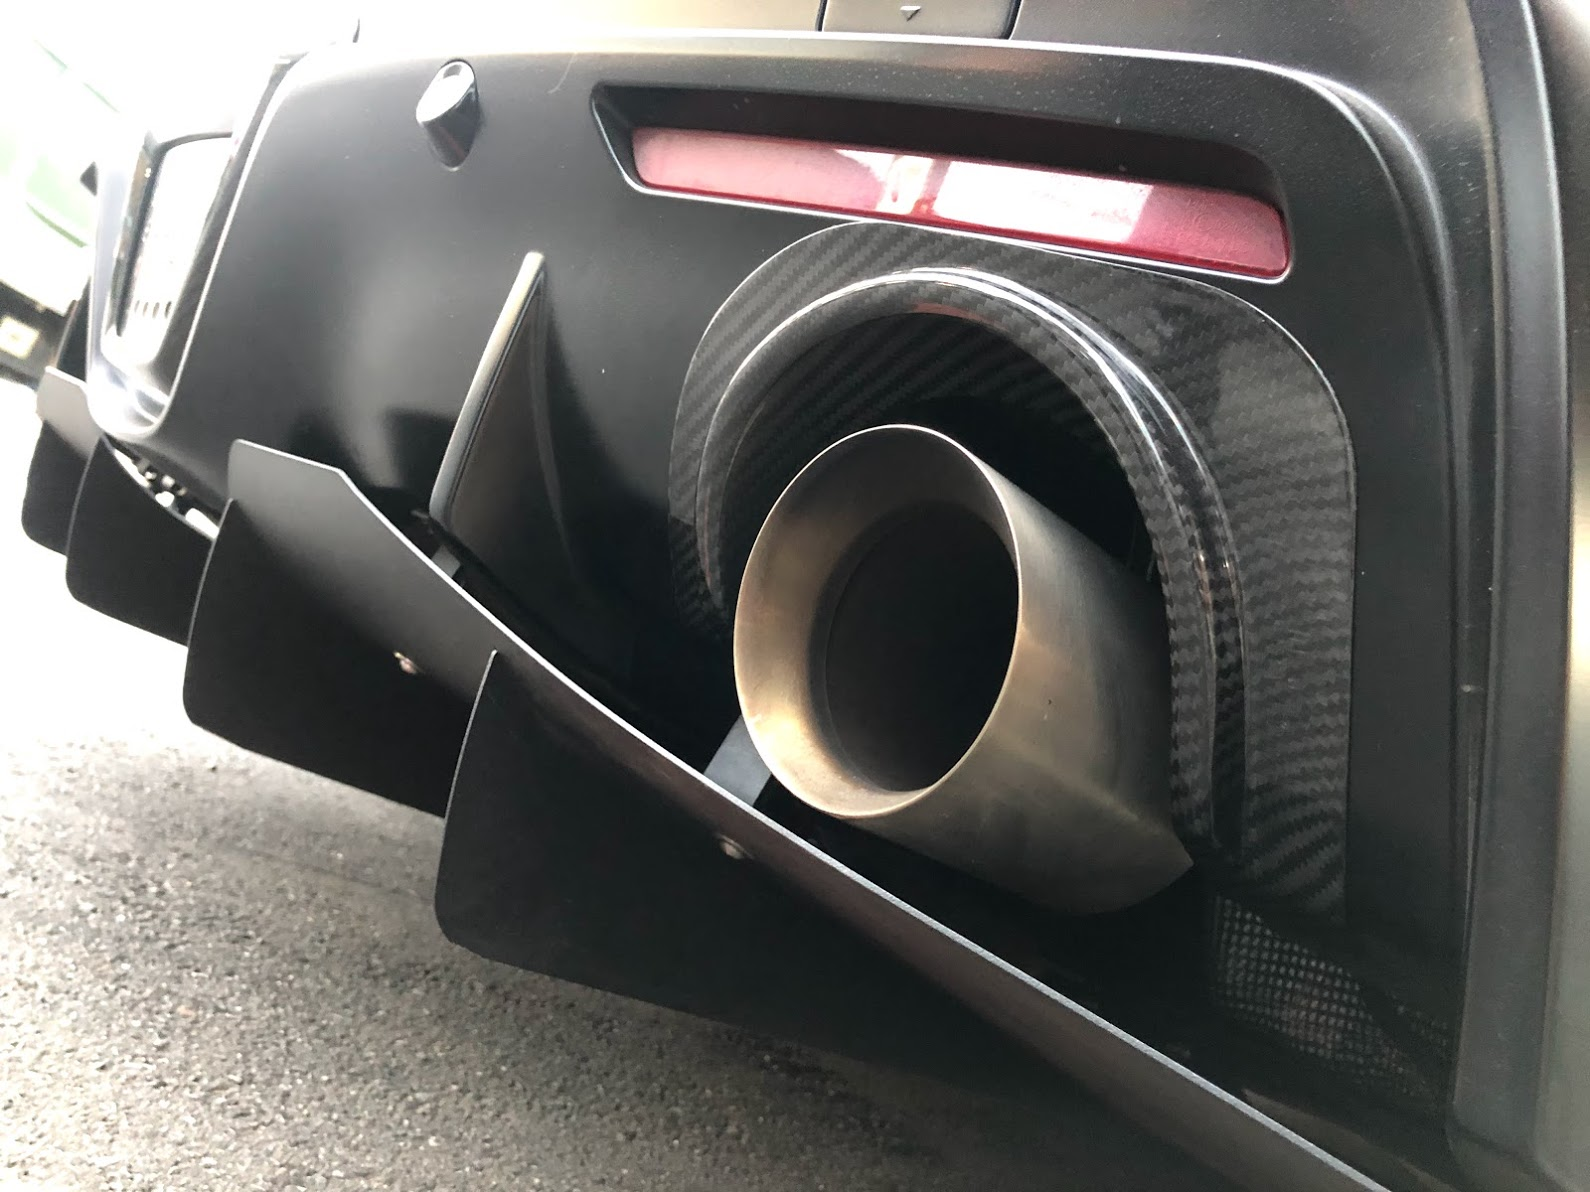 2020 up Supra Carbon rear exhaust shields